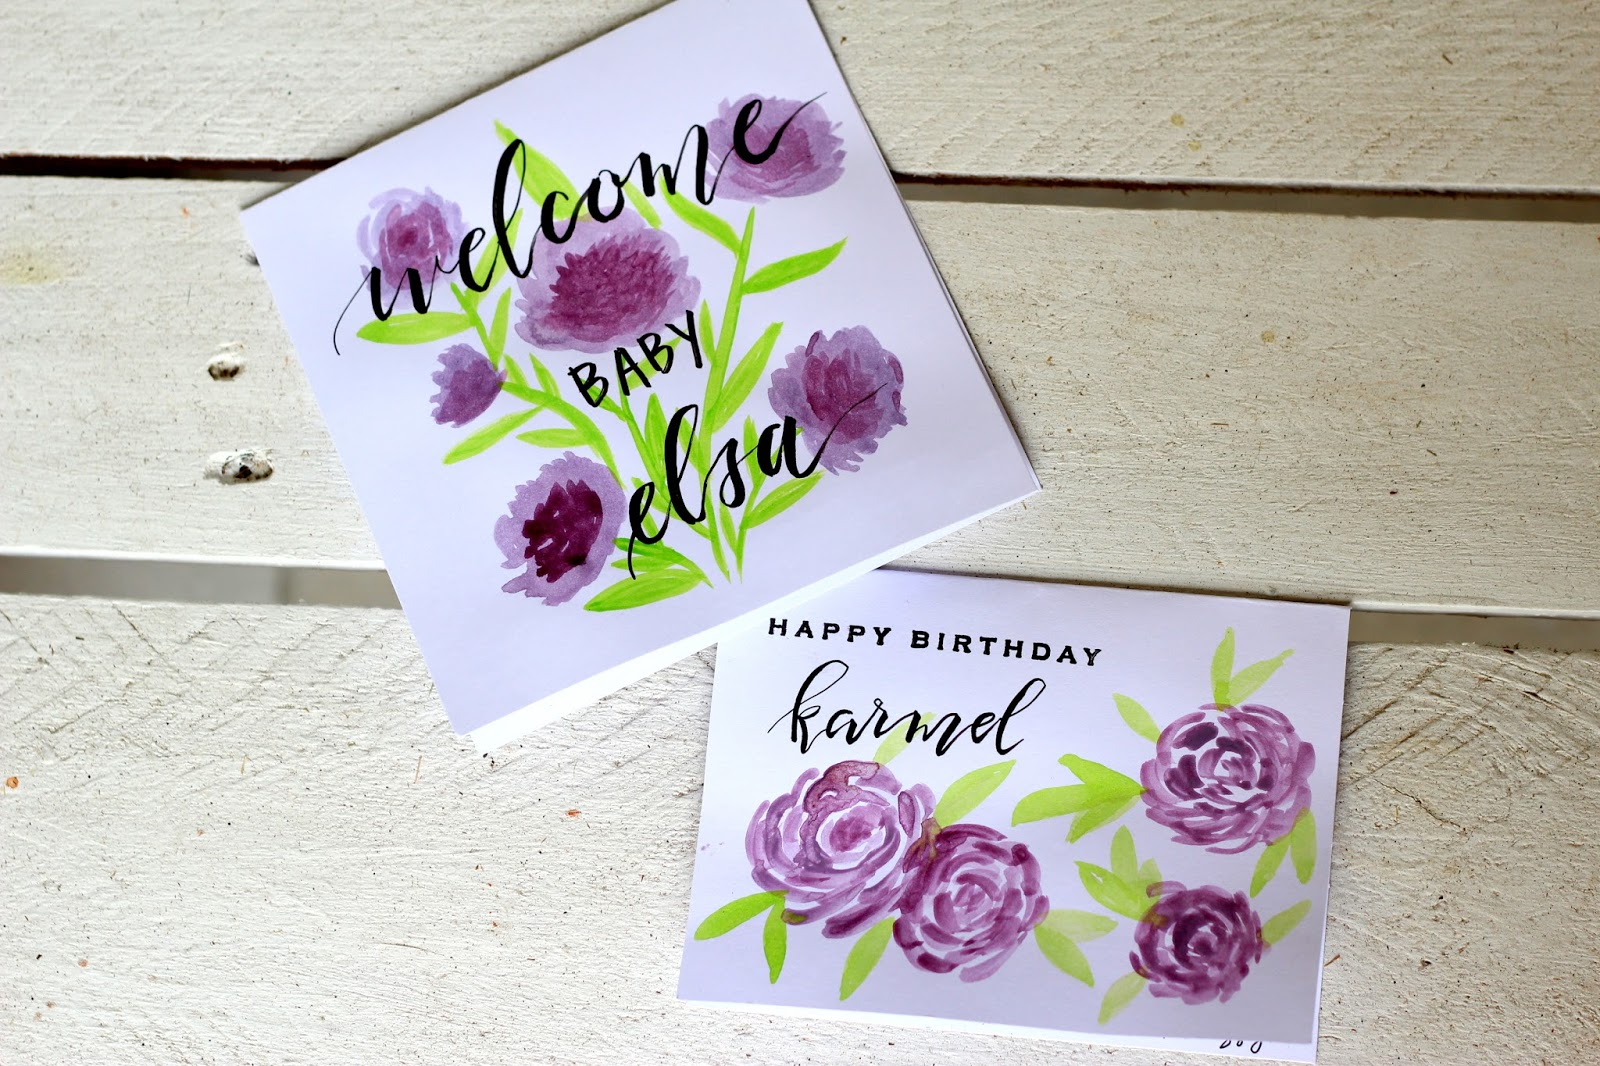 Doleenoted quilled nursery decor and watercolor greeting cards quilled nursery decor and watercolor greeting cards kristyandbryce Images